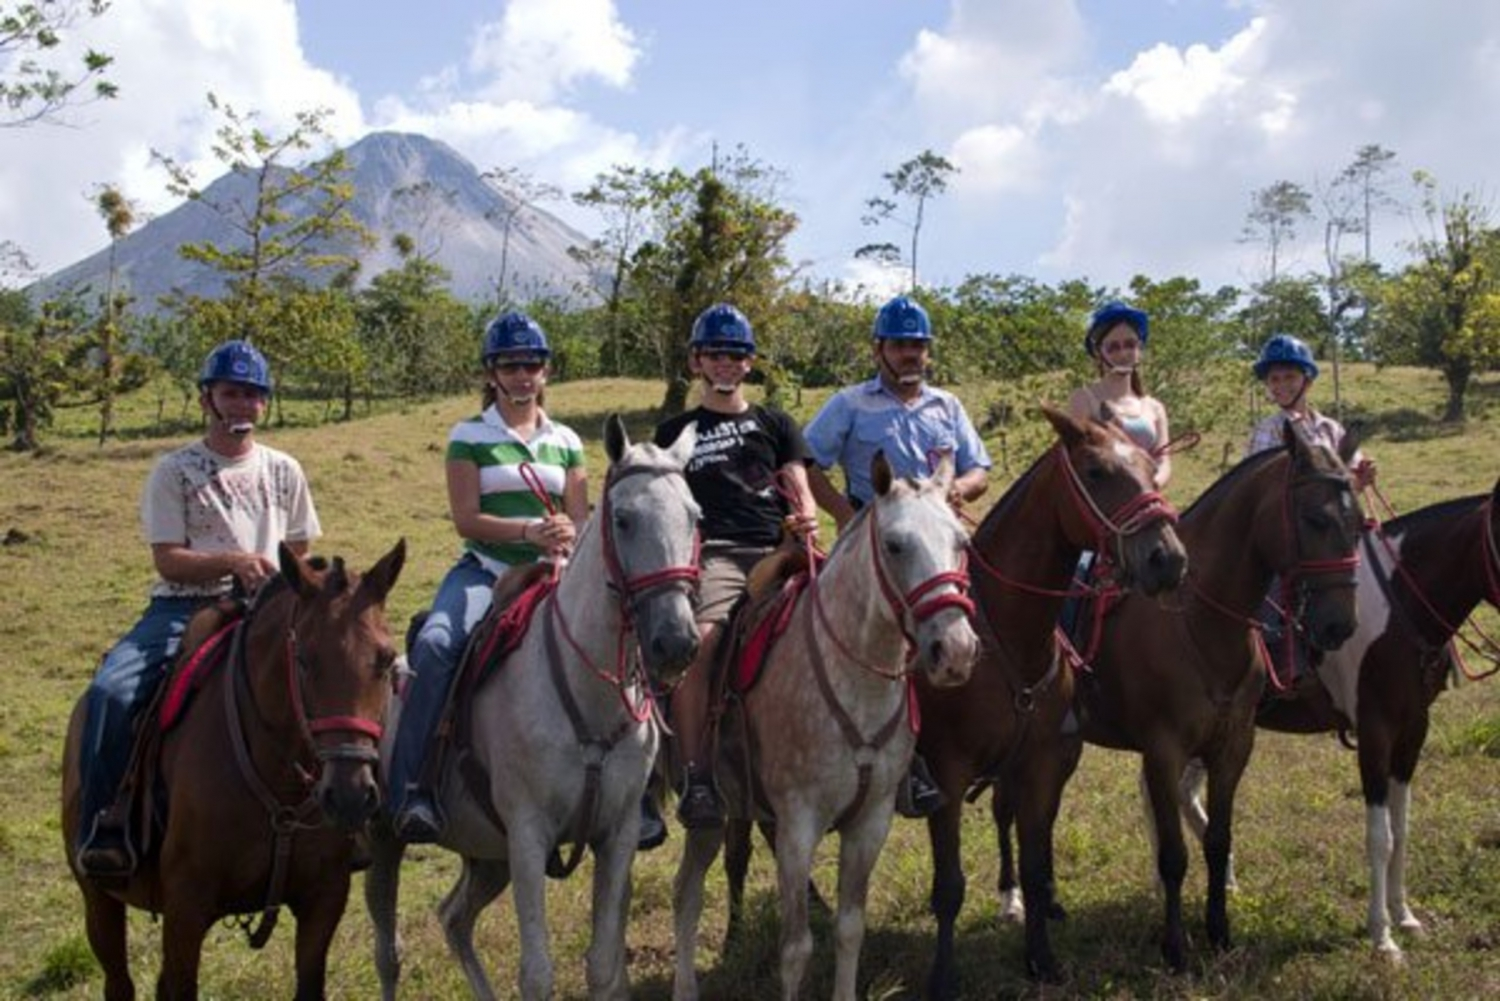 La Fortuna to/from Monteverde: 5-Hour Tour by Horseback